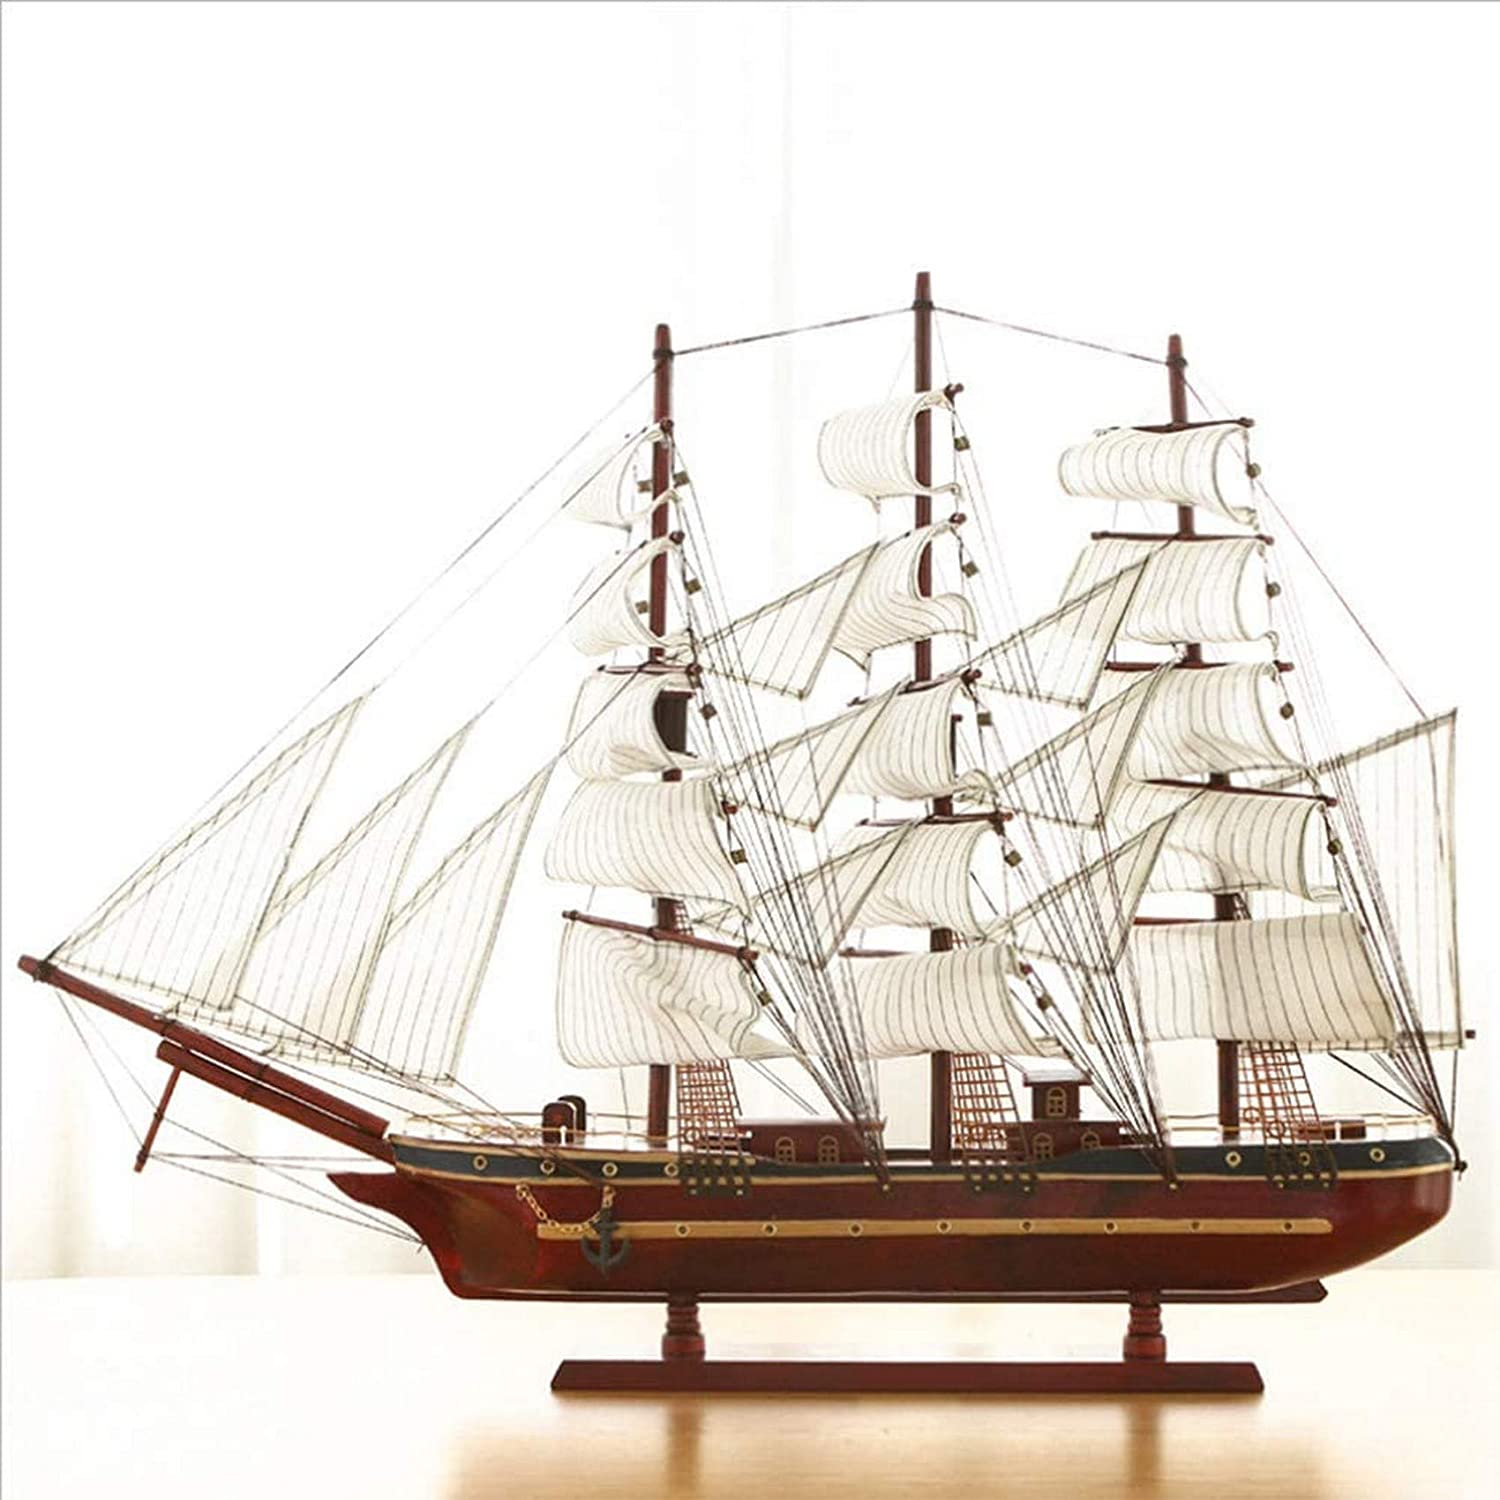 Drohneks Ship Model Wooden Sailing Handcrafted Home Decorative Nautical Wooden Pirate Ship Sailboat Boat Model Decor 80Cm62Cm